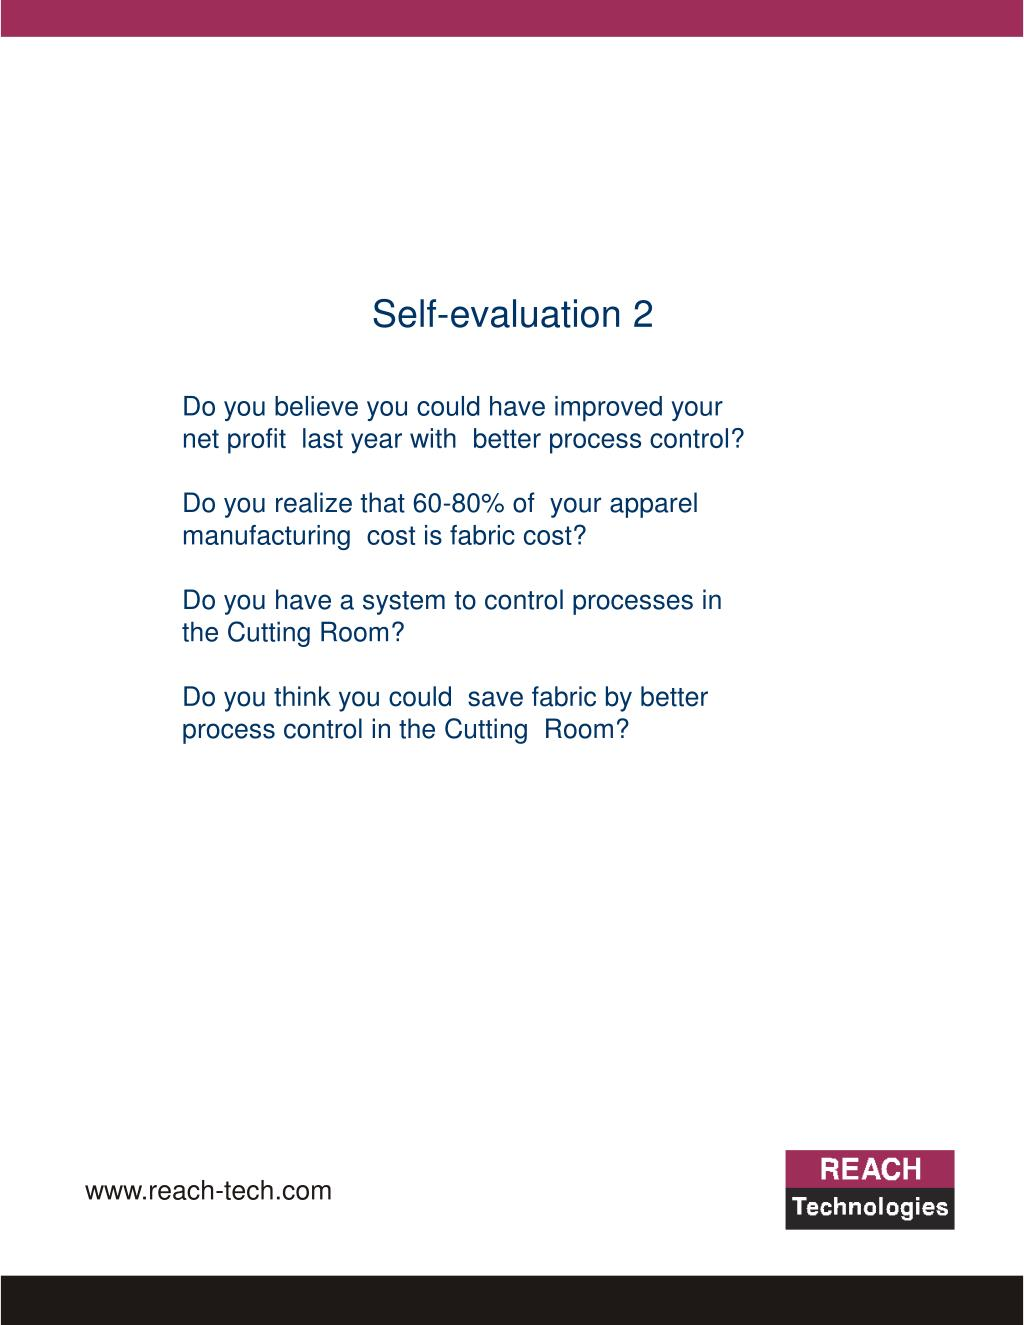 Self-evaluation 2